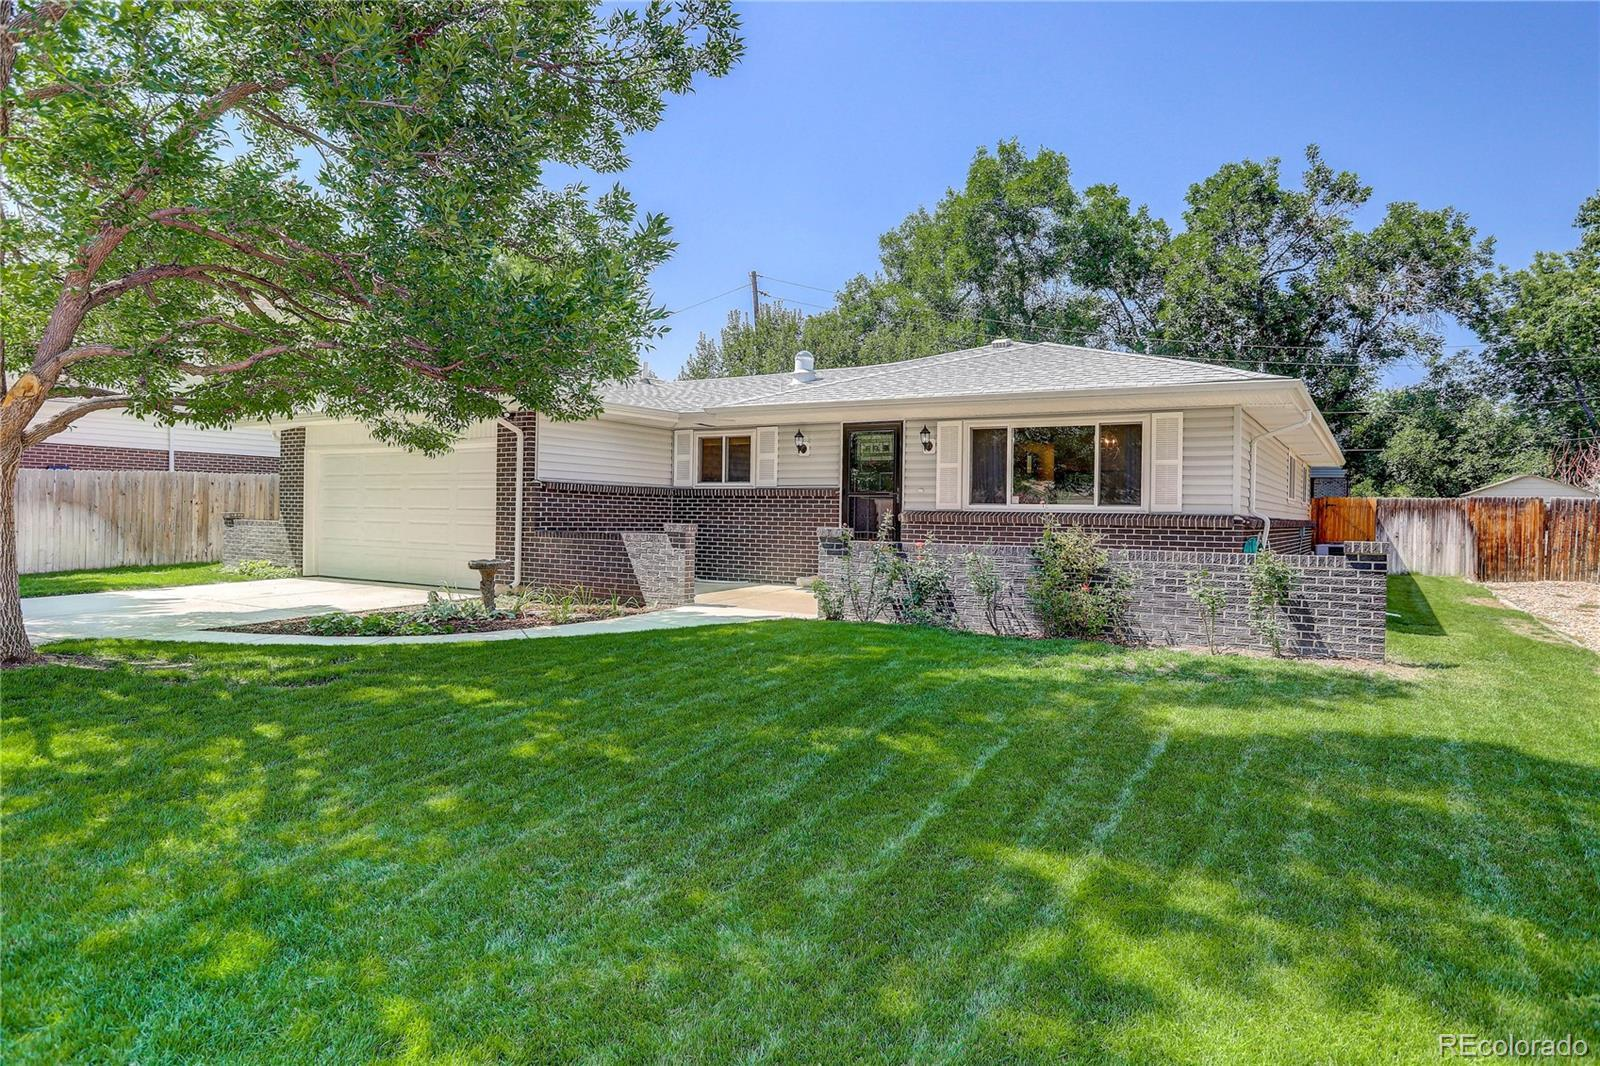 991 S Holland Court, Lakewood, CO 80226 - #: 3598458